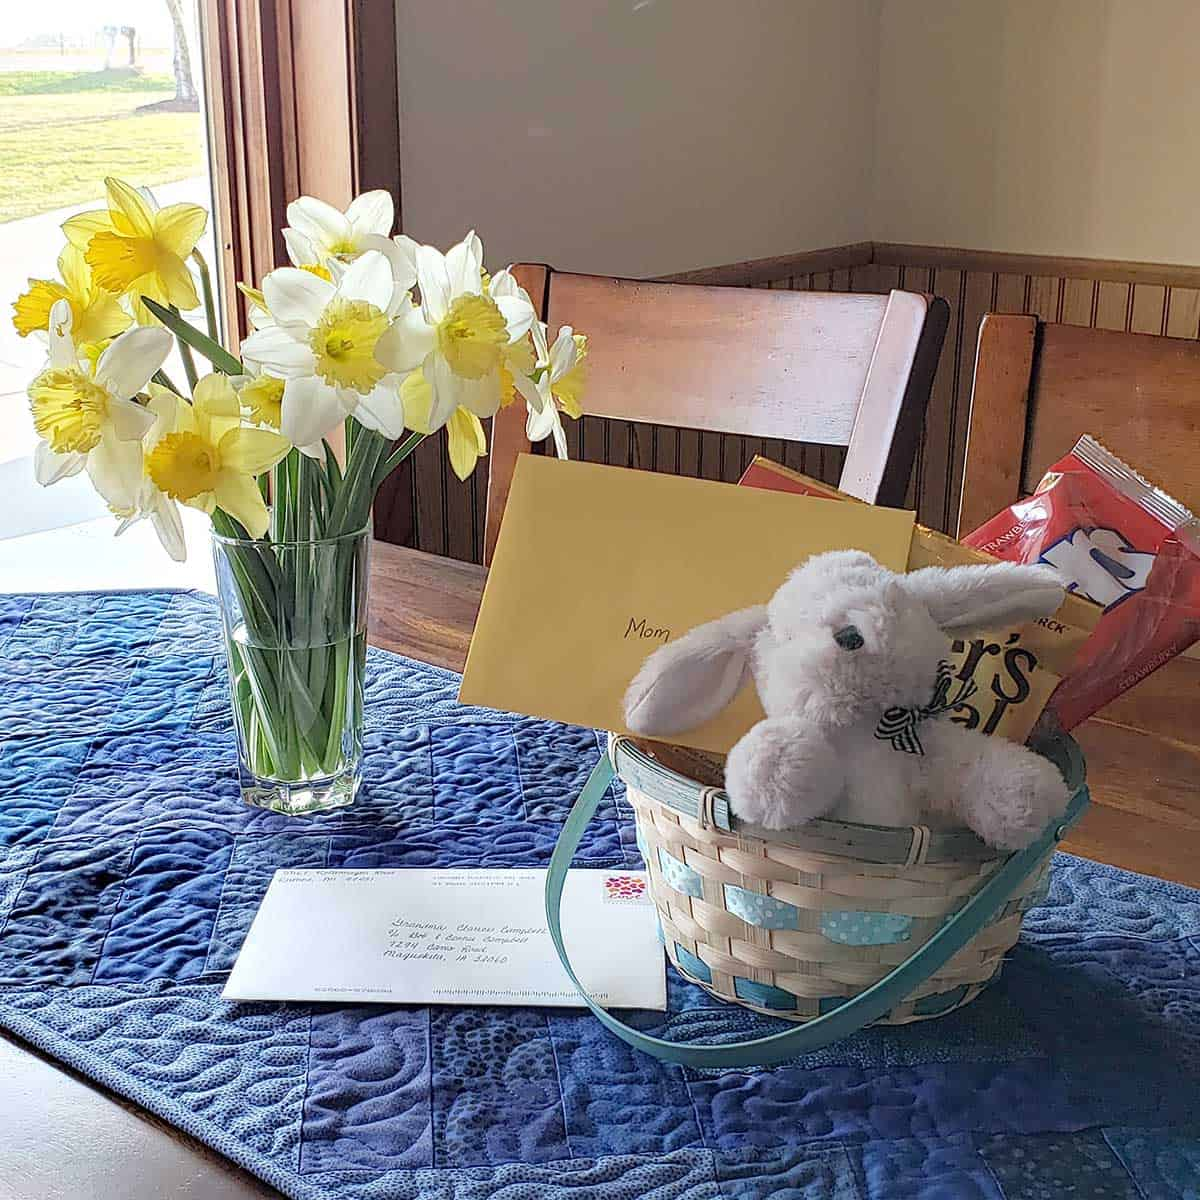 Flowers and Easter Basket on table